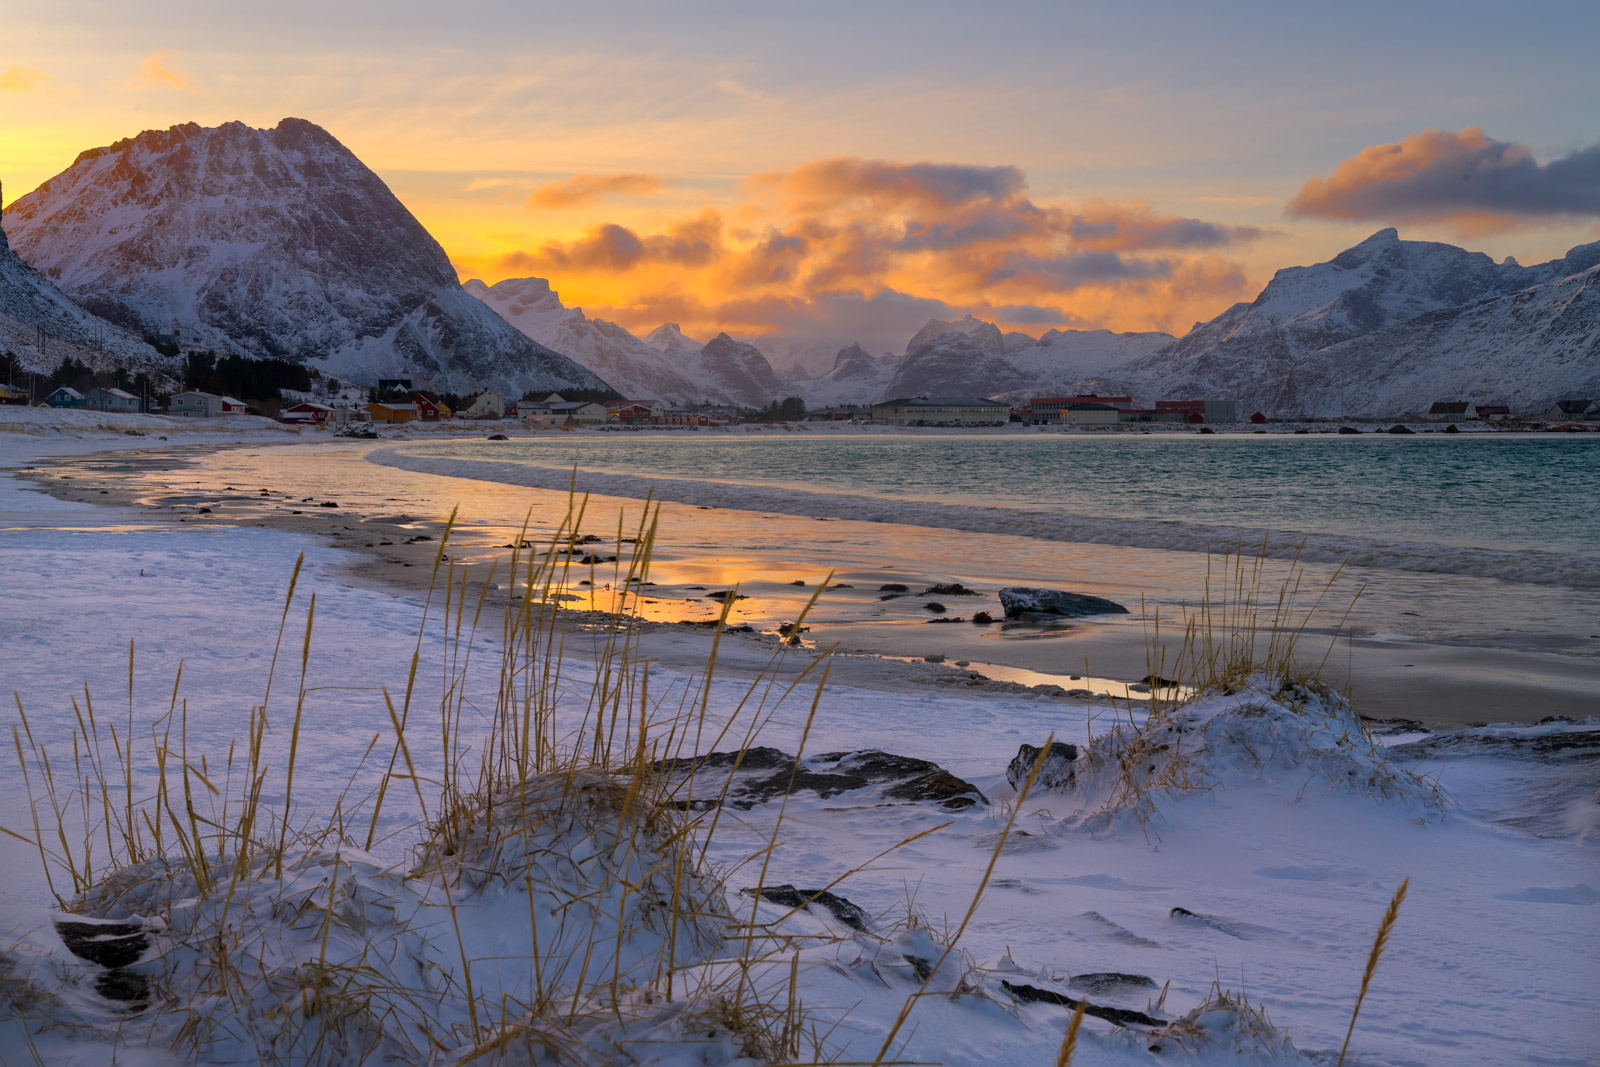 Norway, lofoten, Rahmberg, Beach, Sunset